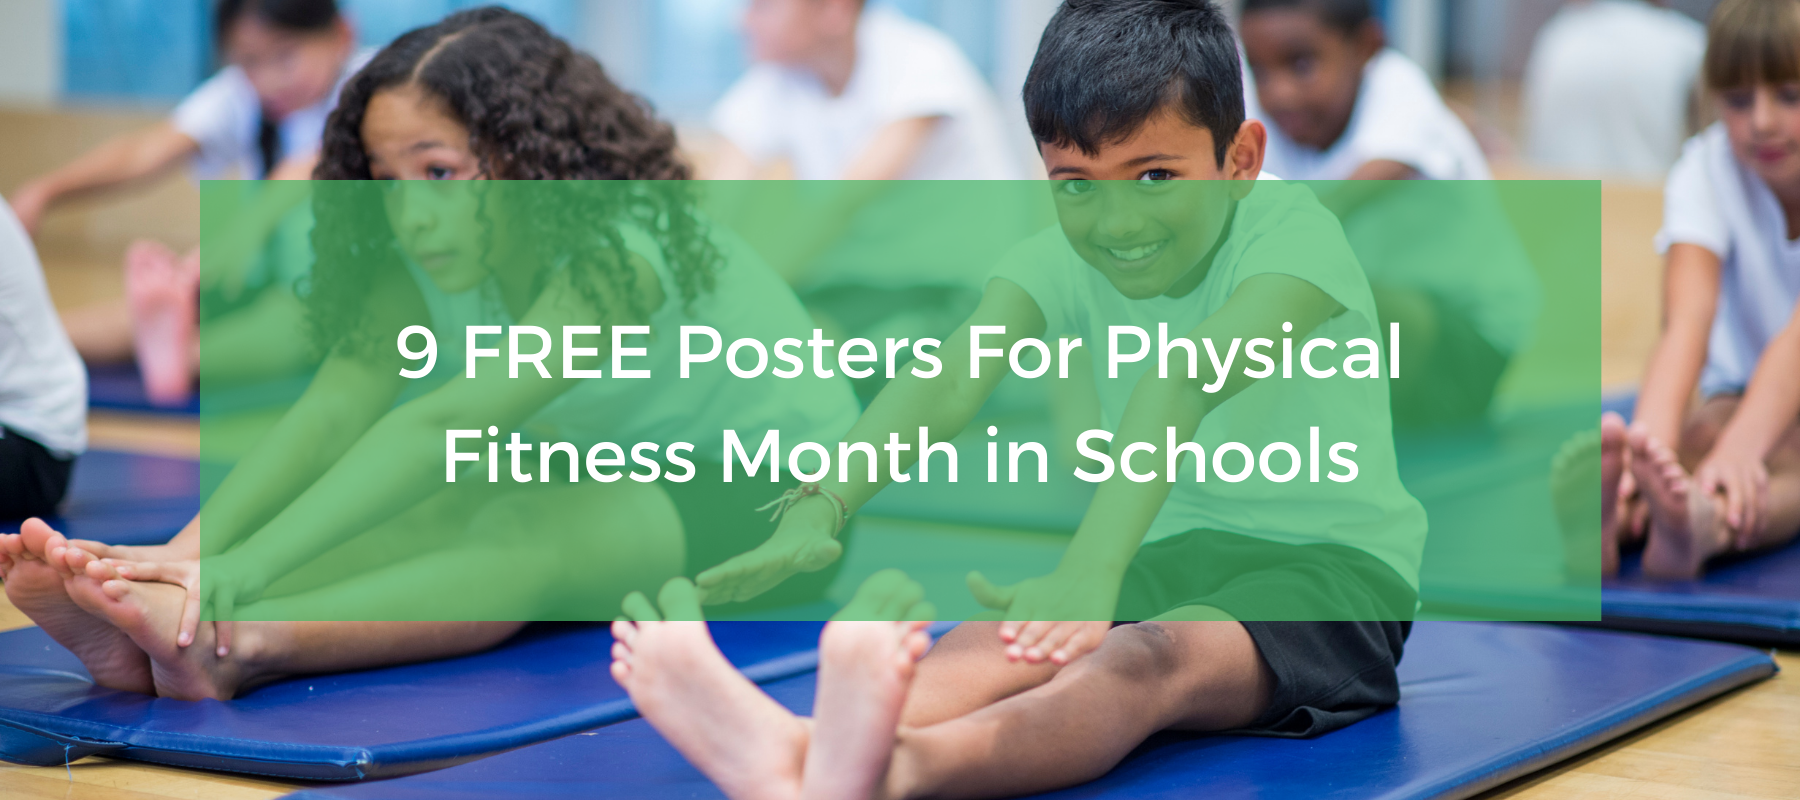 Physical fitness month posters for schools